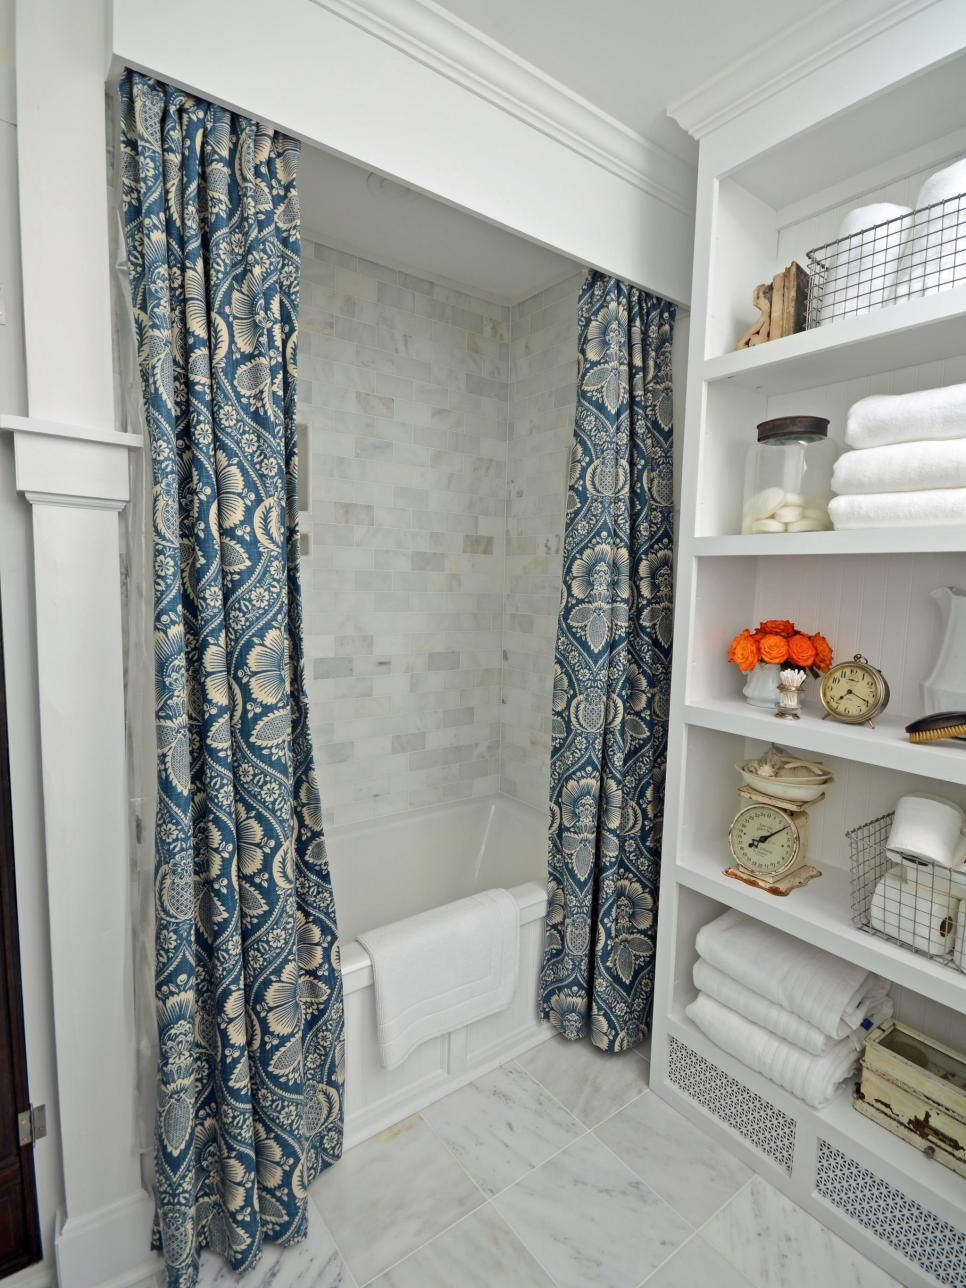 Salle De Bain Slide Share ~ cornice board shower curtain in traditional bathroom la salle de